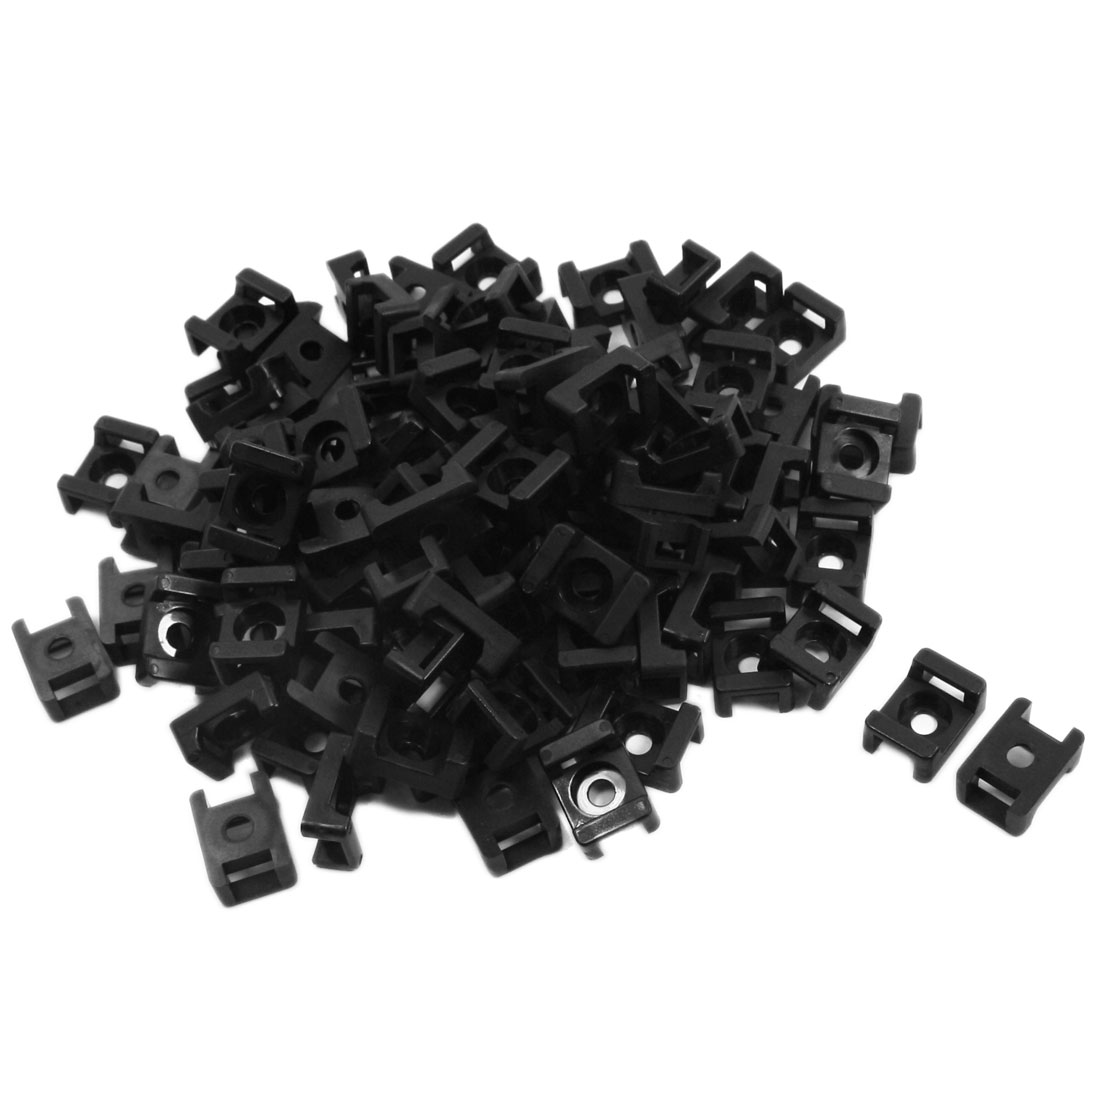 8mm Max Tie Width Black Cable Mount Saddle Base Holder 100 Pcs